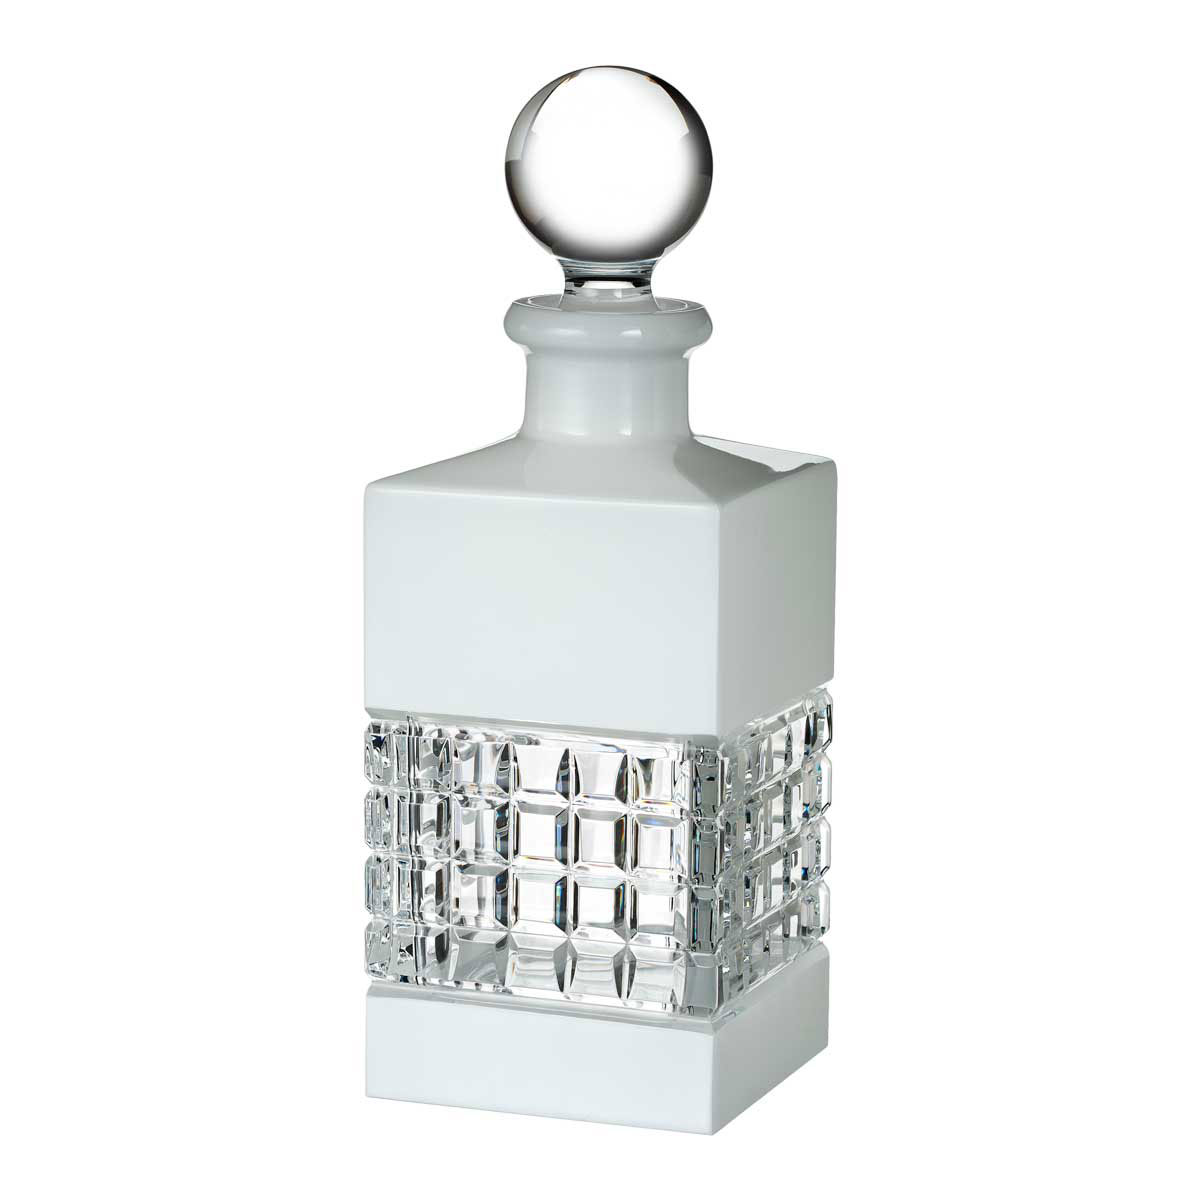 Waterford Crystal, London Square Crystal Decanter, White